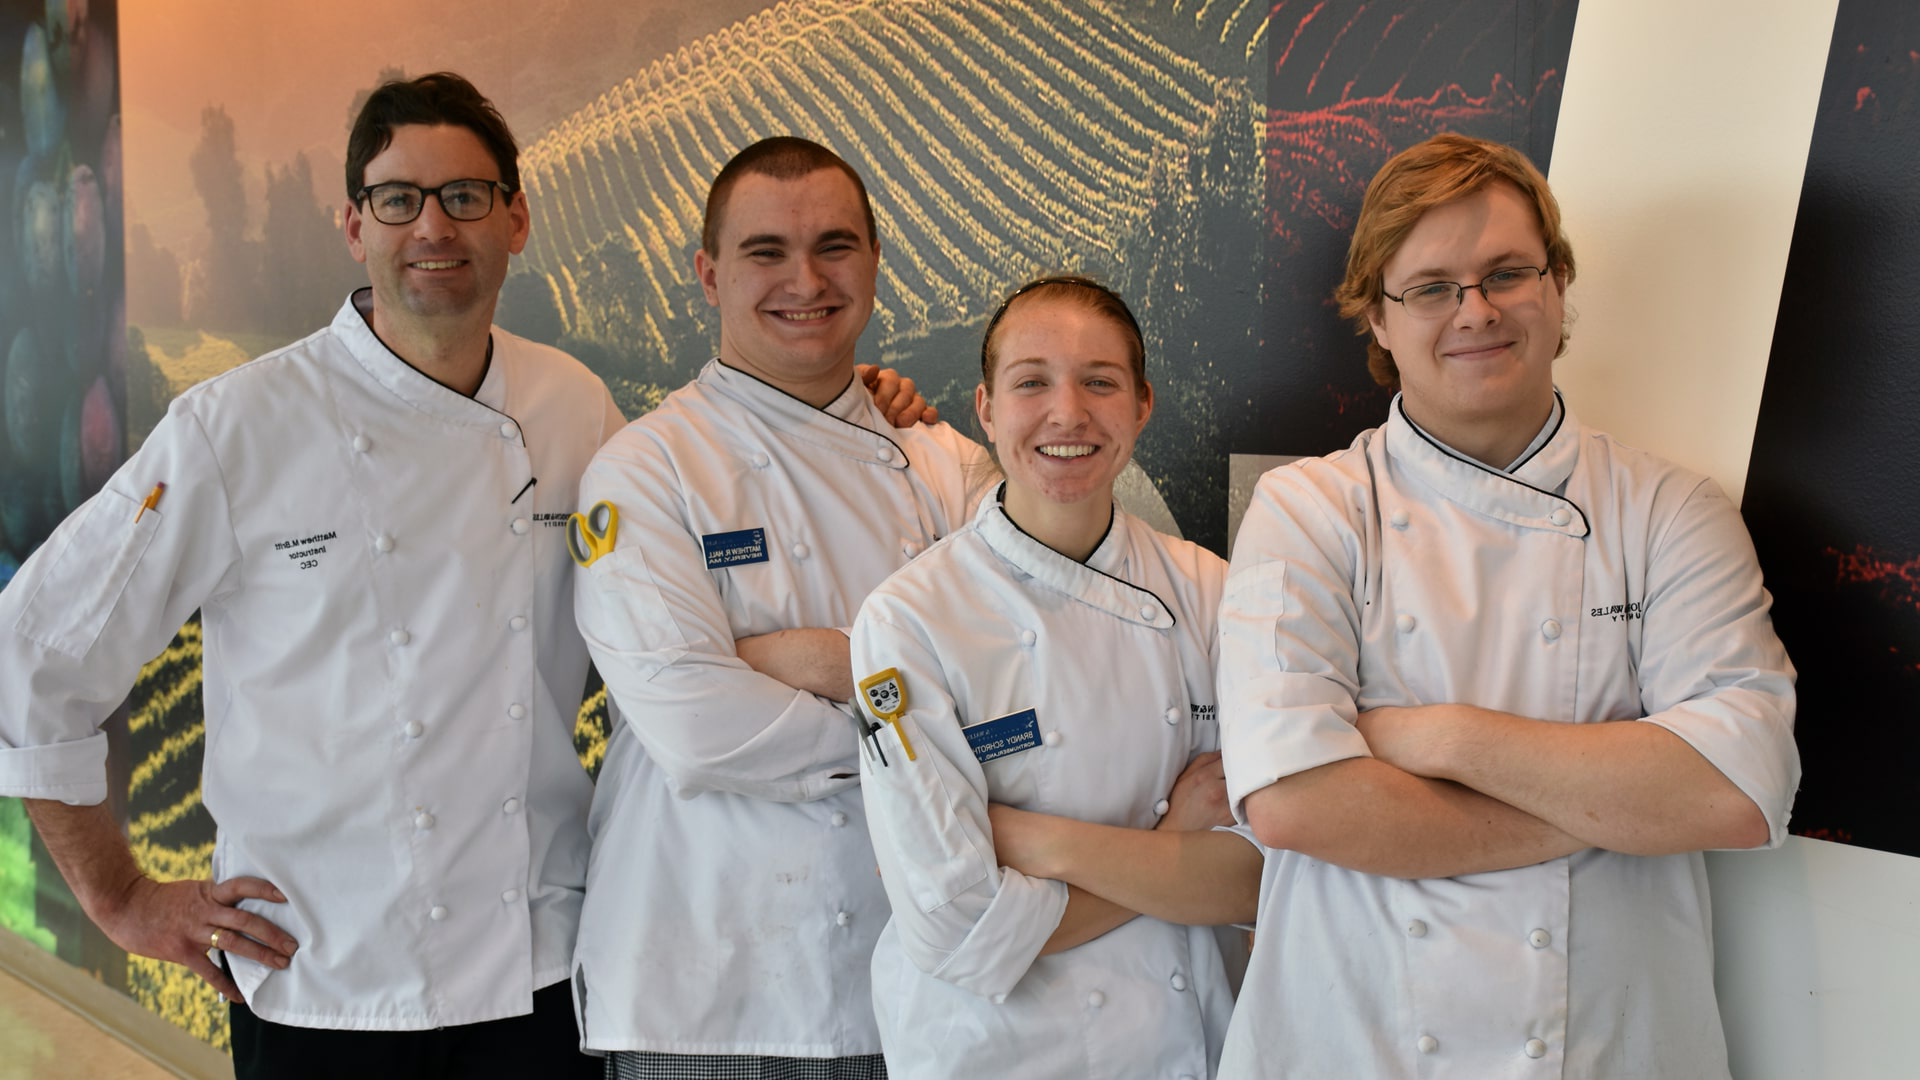 Essex Clams Development Group, left-right: Jake Vincent, Brandy Schroth, Matthew Hall, Chef 马修·布里特 (Not pictured: Idacia Miles)